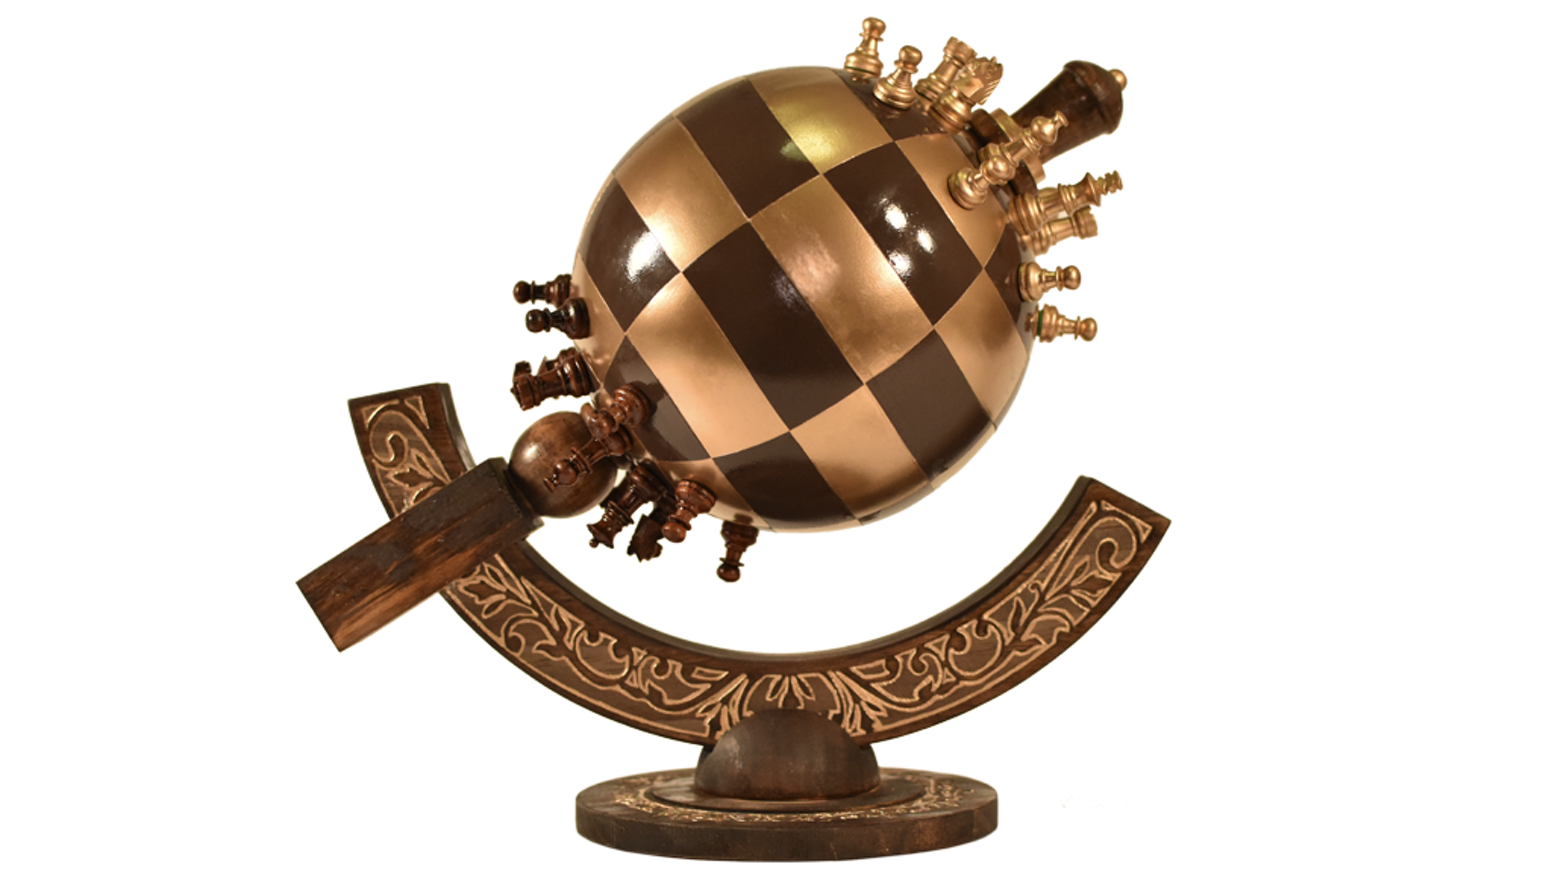 A fully playable spherical chess set including magnetic pieces, a finely crafted wooden base & a steel globe sphere.